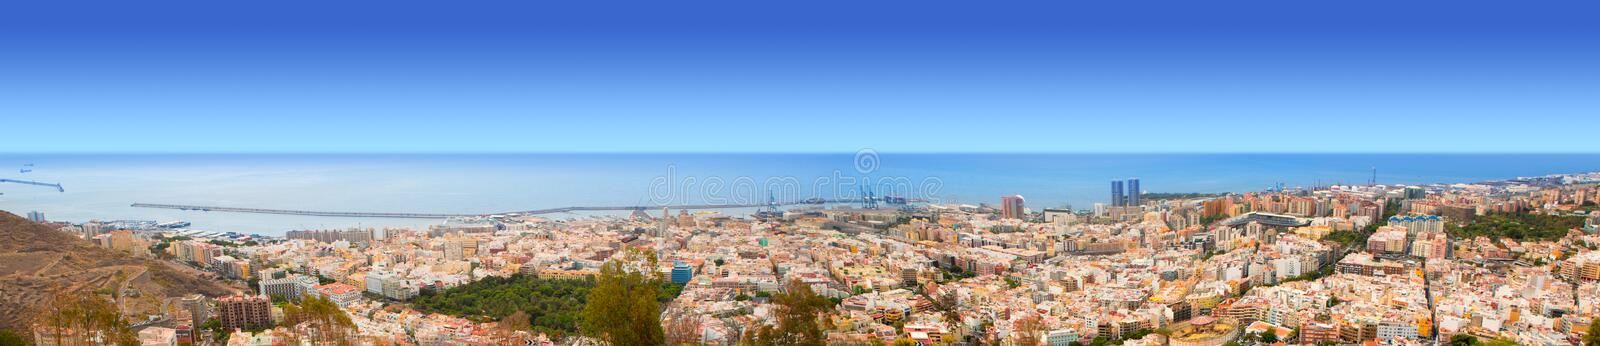 Antenne de Santa Cruz de Tenerife panoramique photo stock